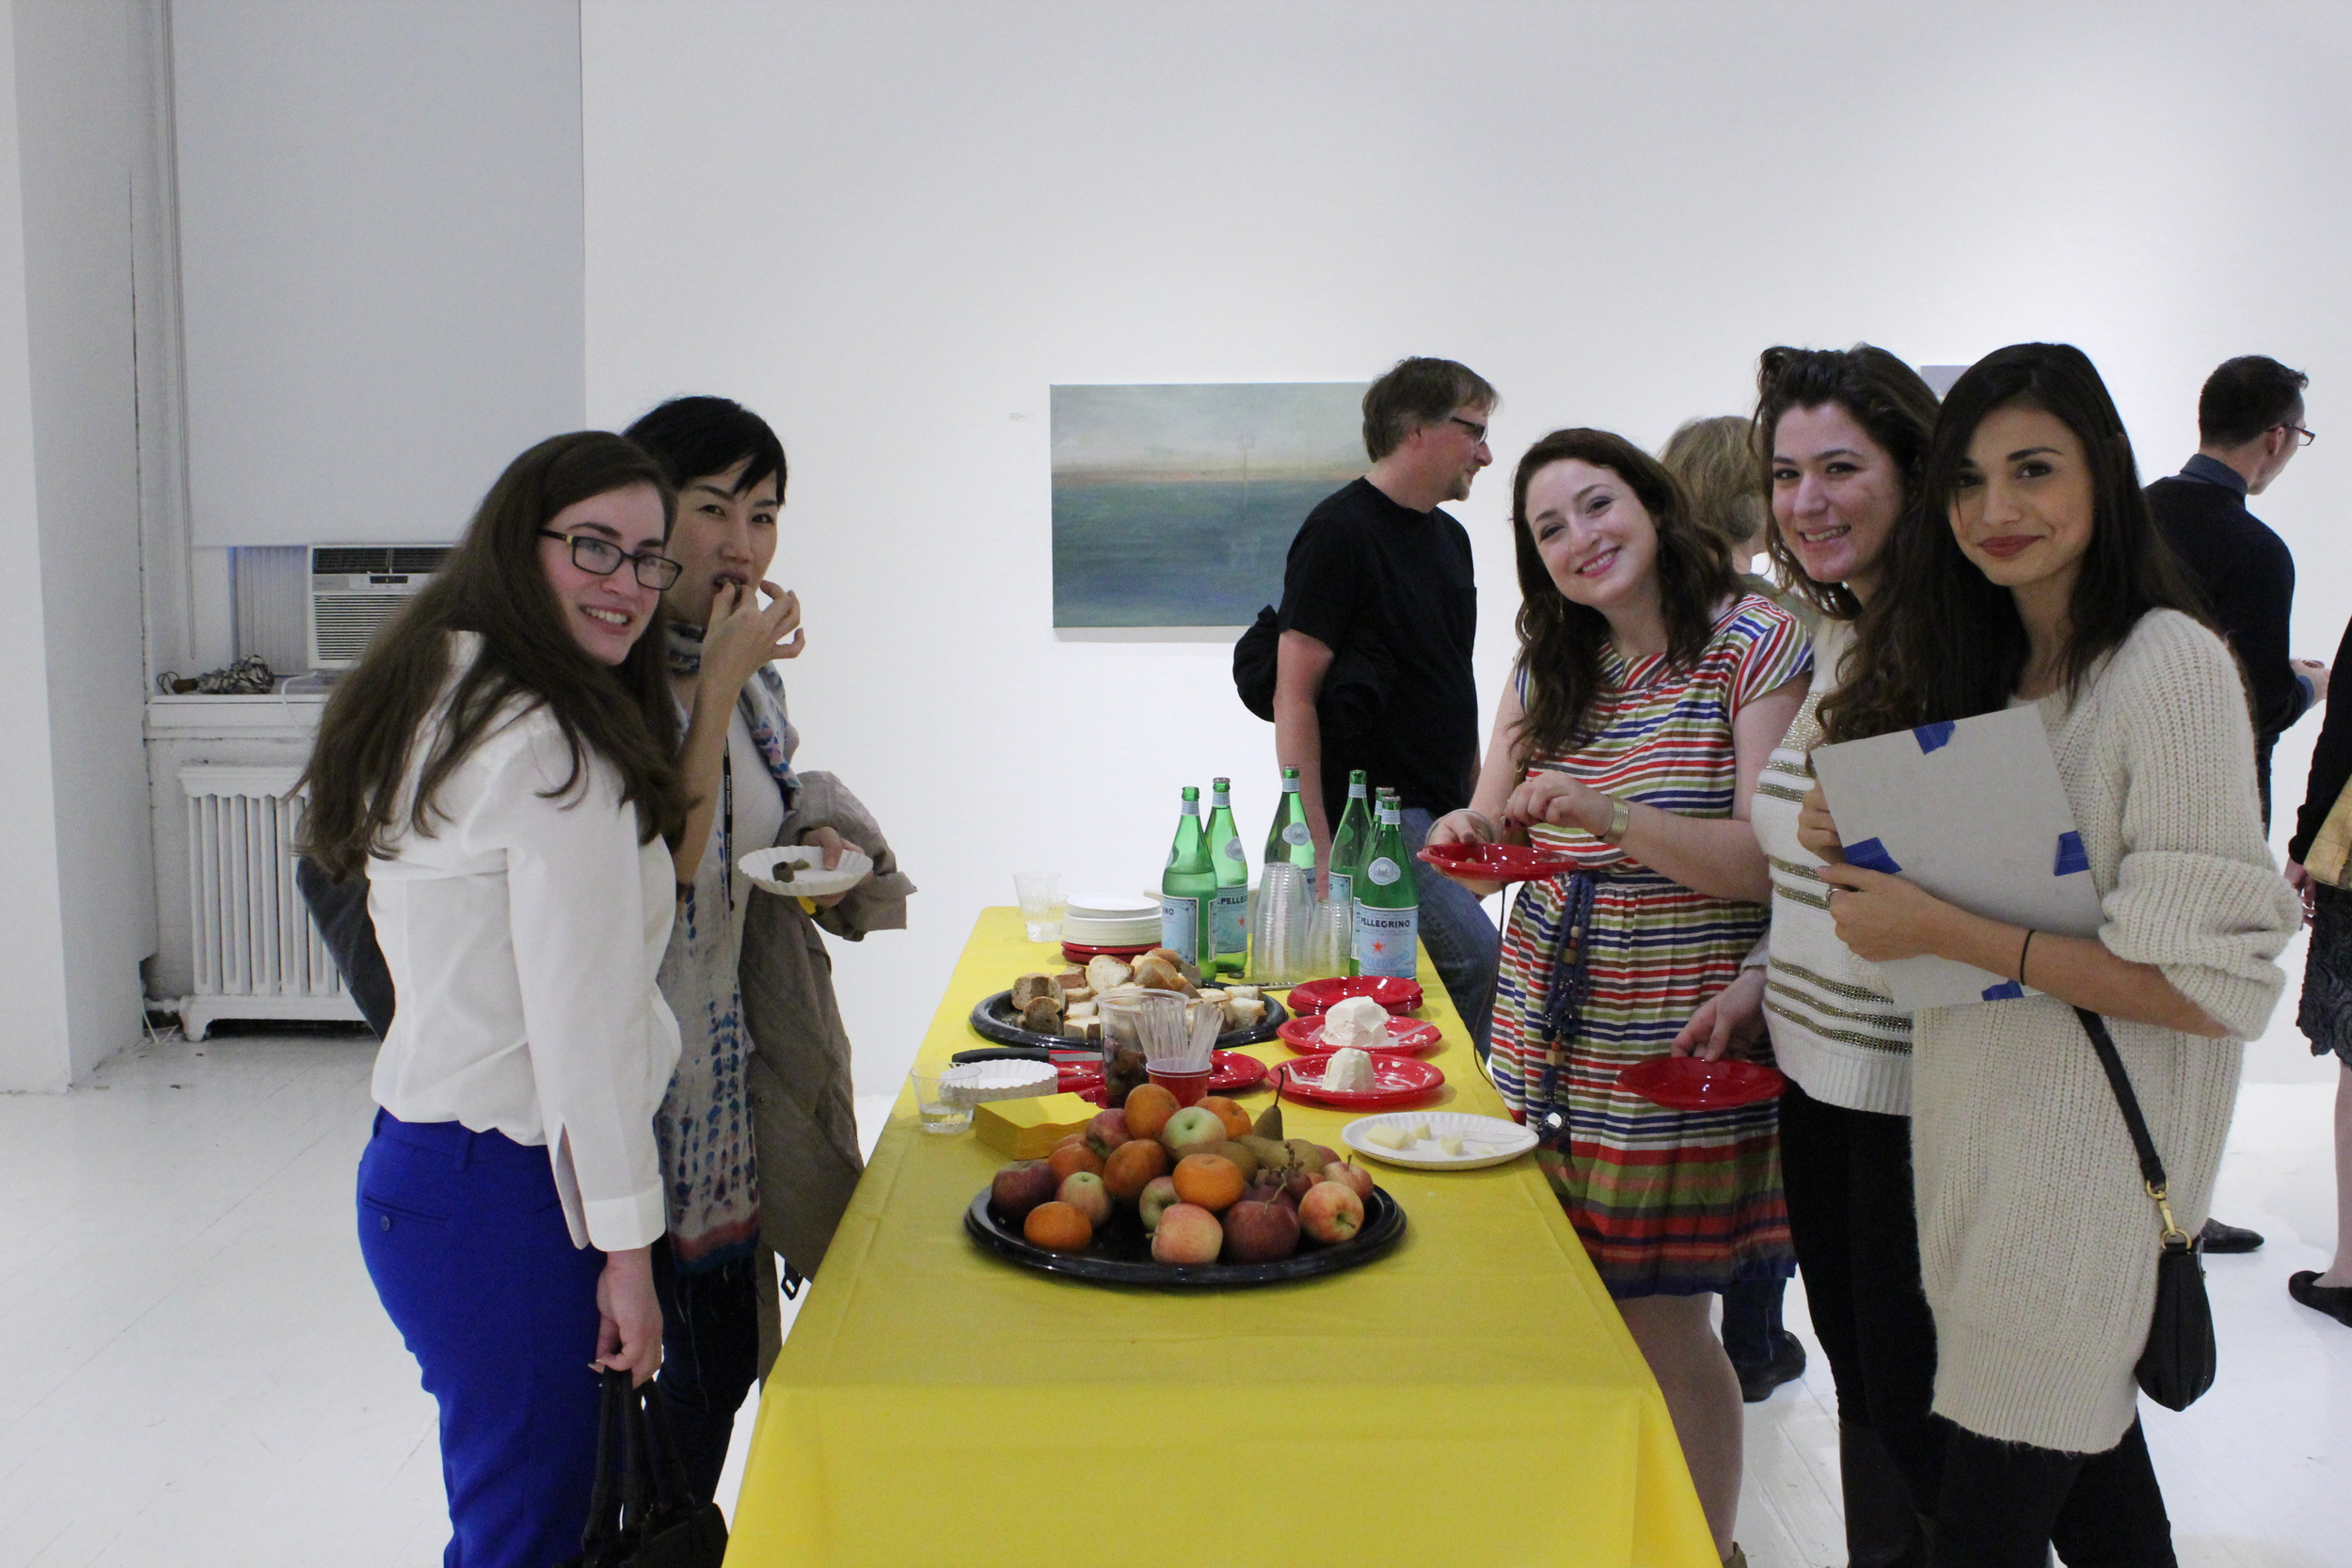 2012 Exhibition opening with PiV alumnae (from left to right) Elizabeth Meyers, Lawana Poopsoksakul, Perri Schneider, Kaitlin Mazzei, and Melina DiMarco; faculty/staff Chris Wright, Jennifer Melby, and Joseph Kopta in the background.